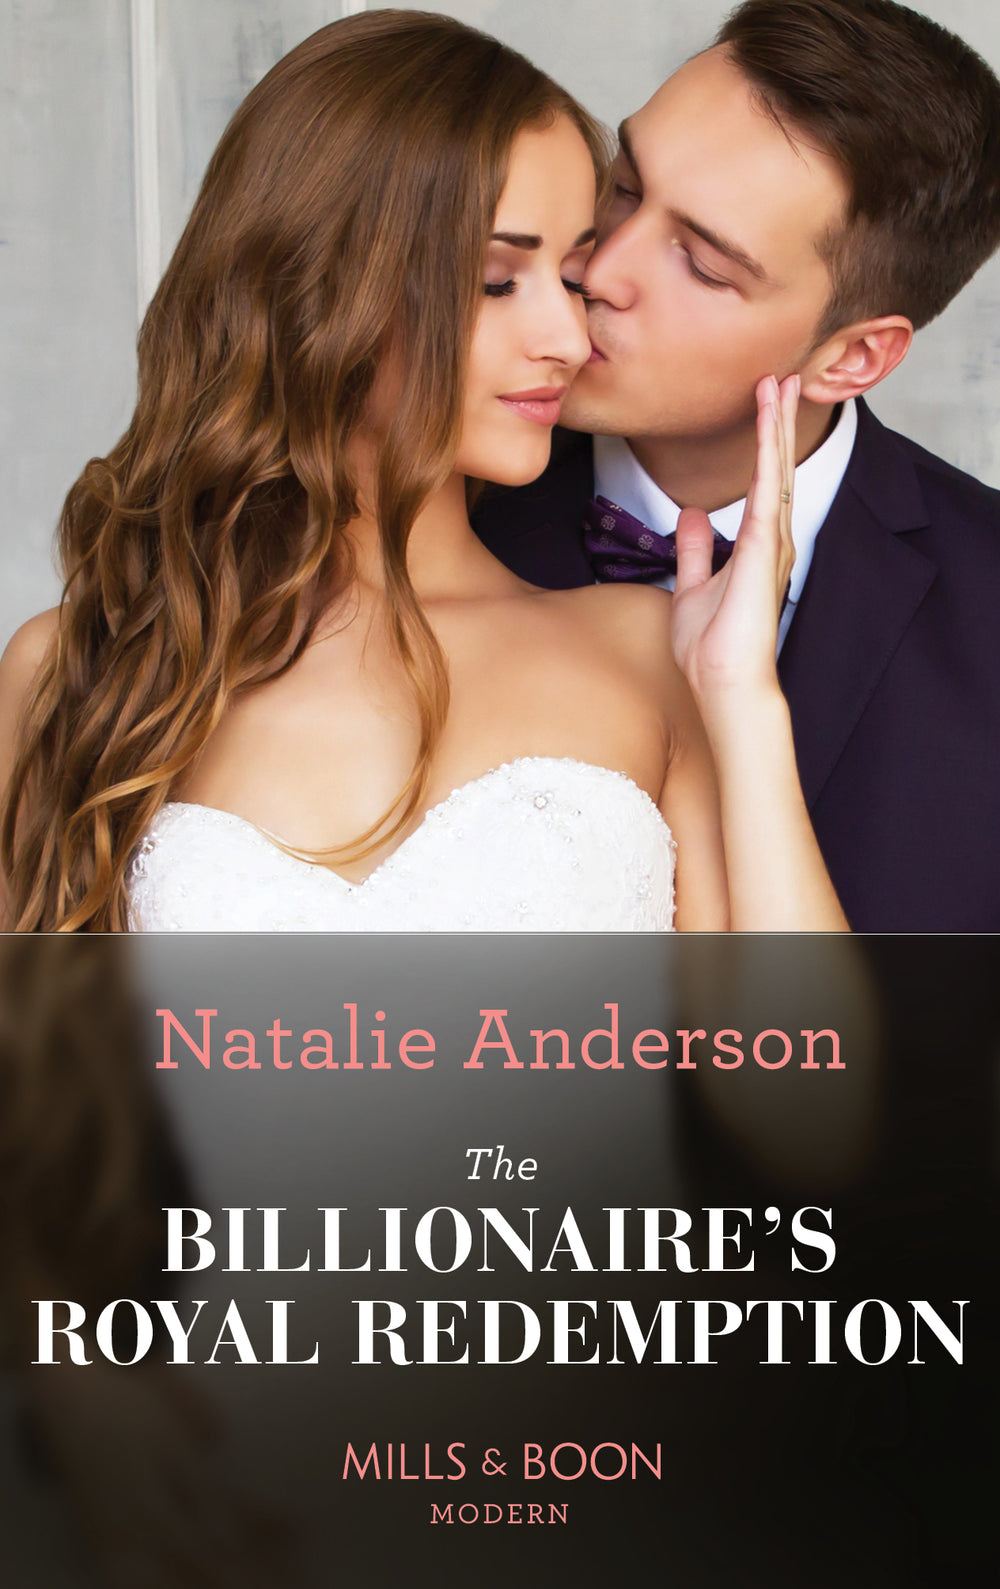 The Billionaire's Royal Redemption - Chapter 6